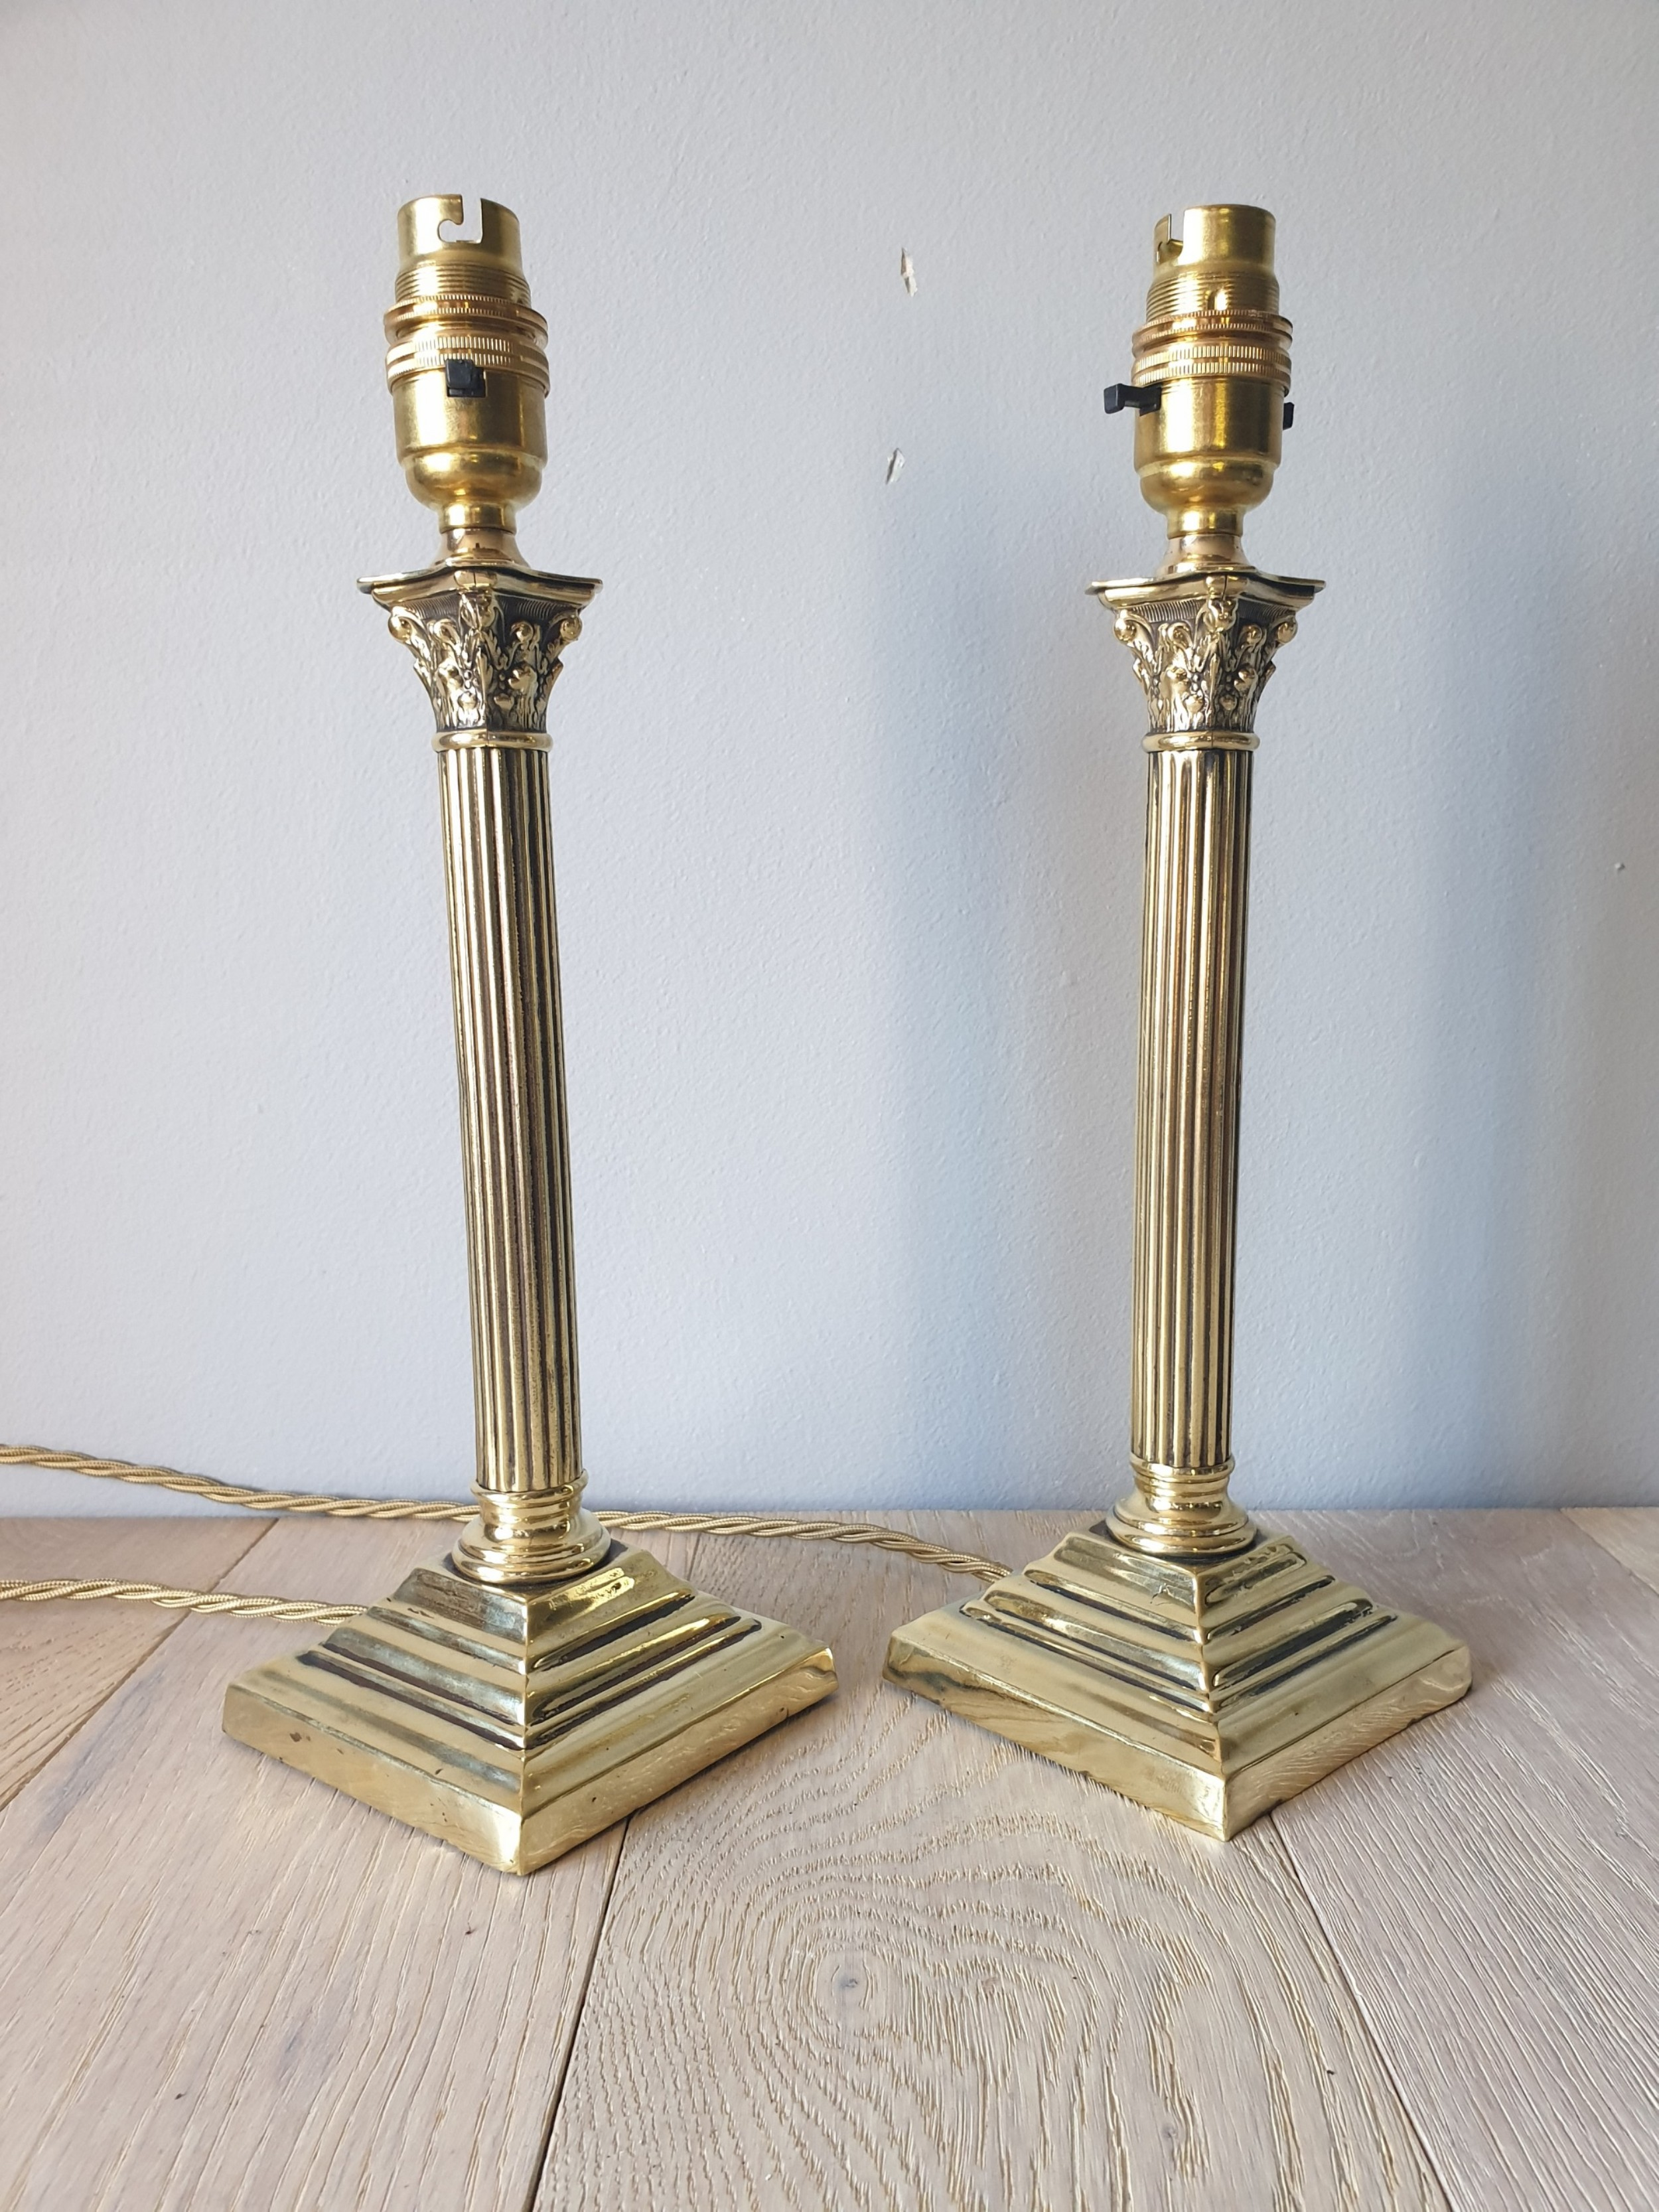 c1910 pair of small corinthian column brass table lamps rewired and pat tested